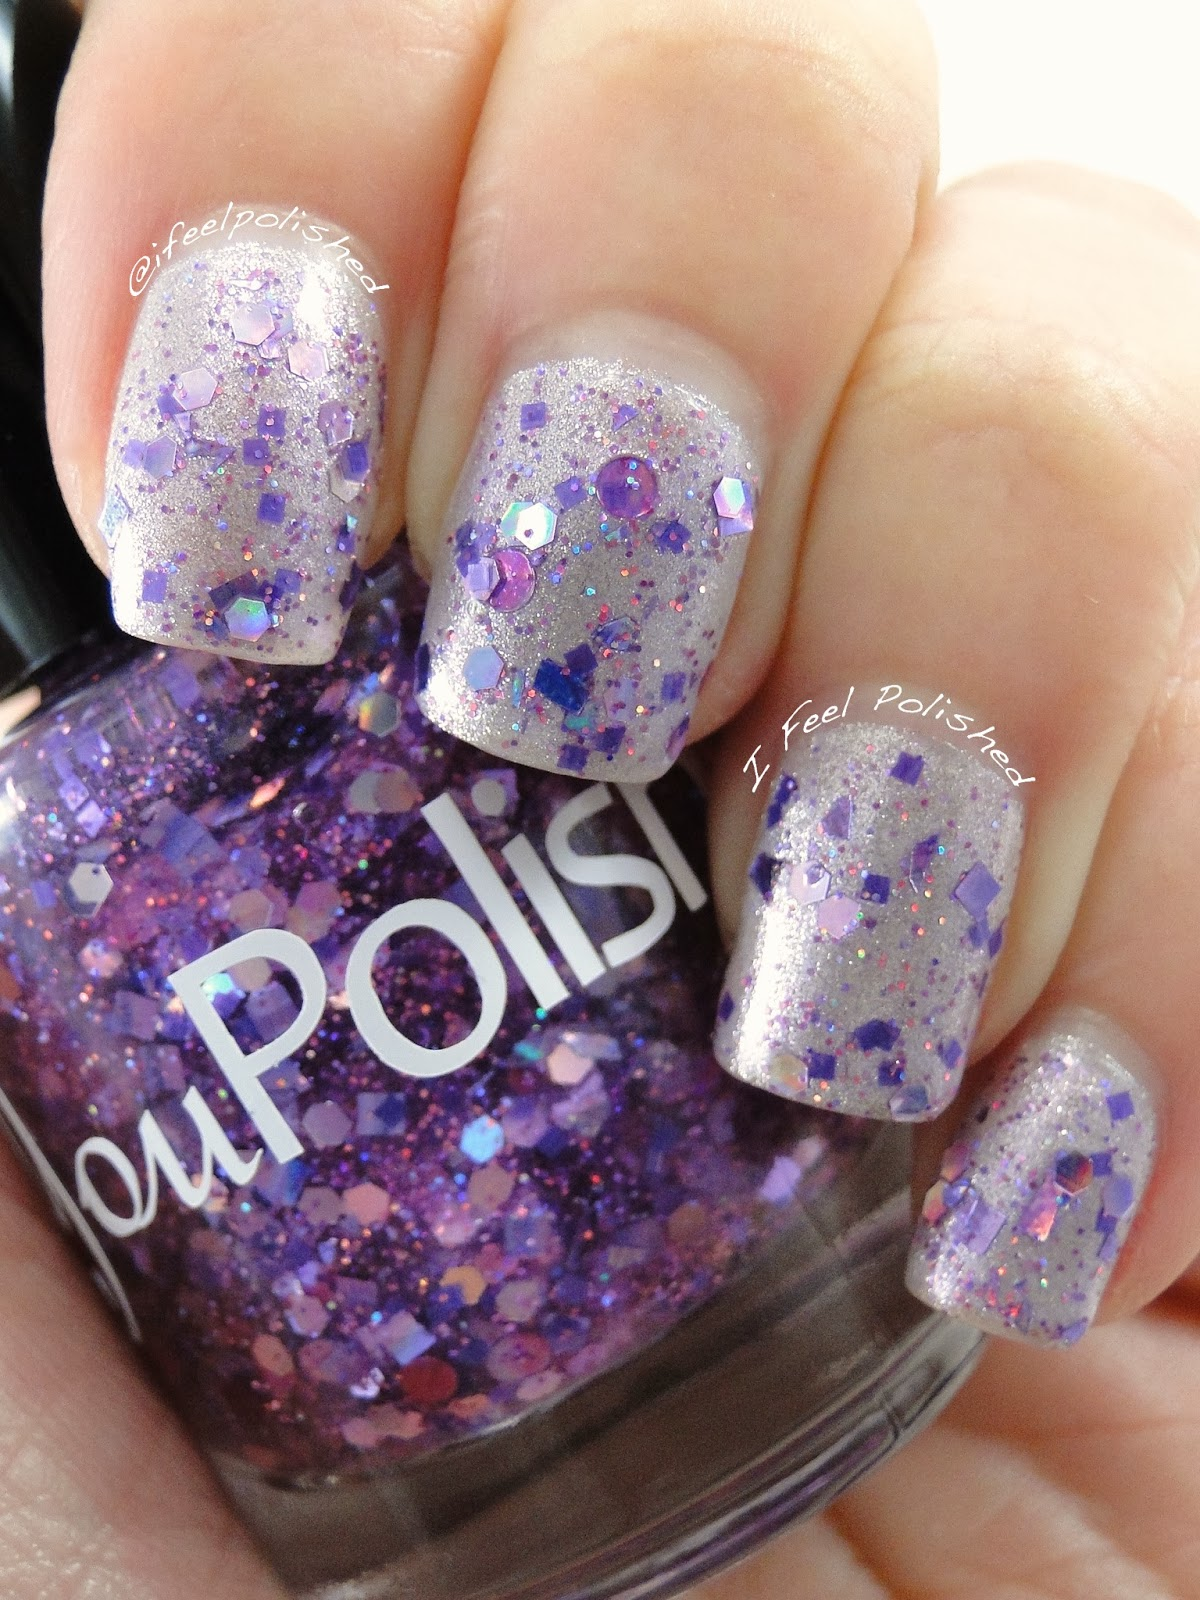 You Polish Amethyst Tryst